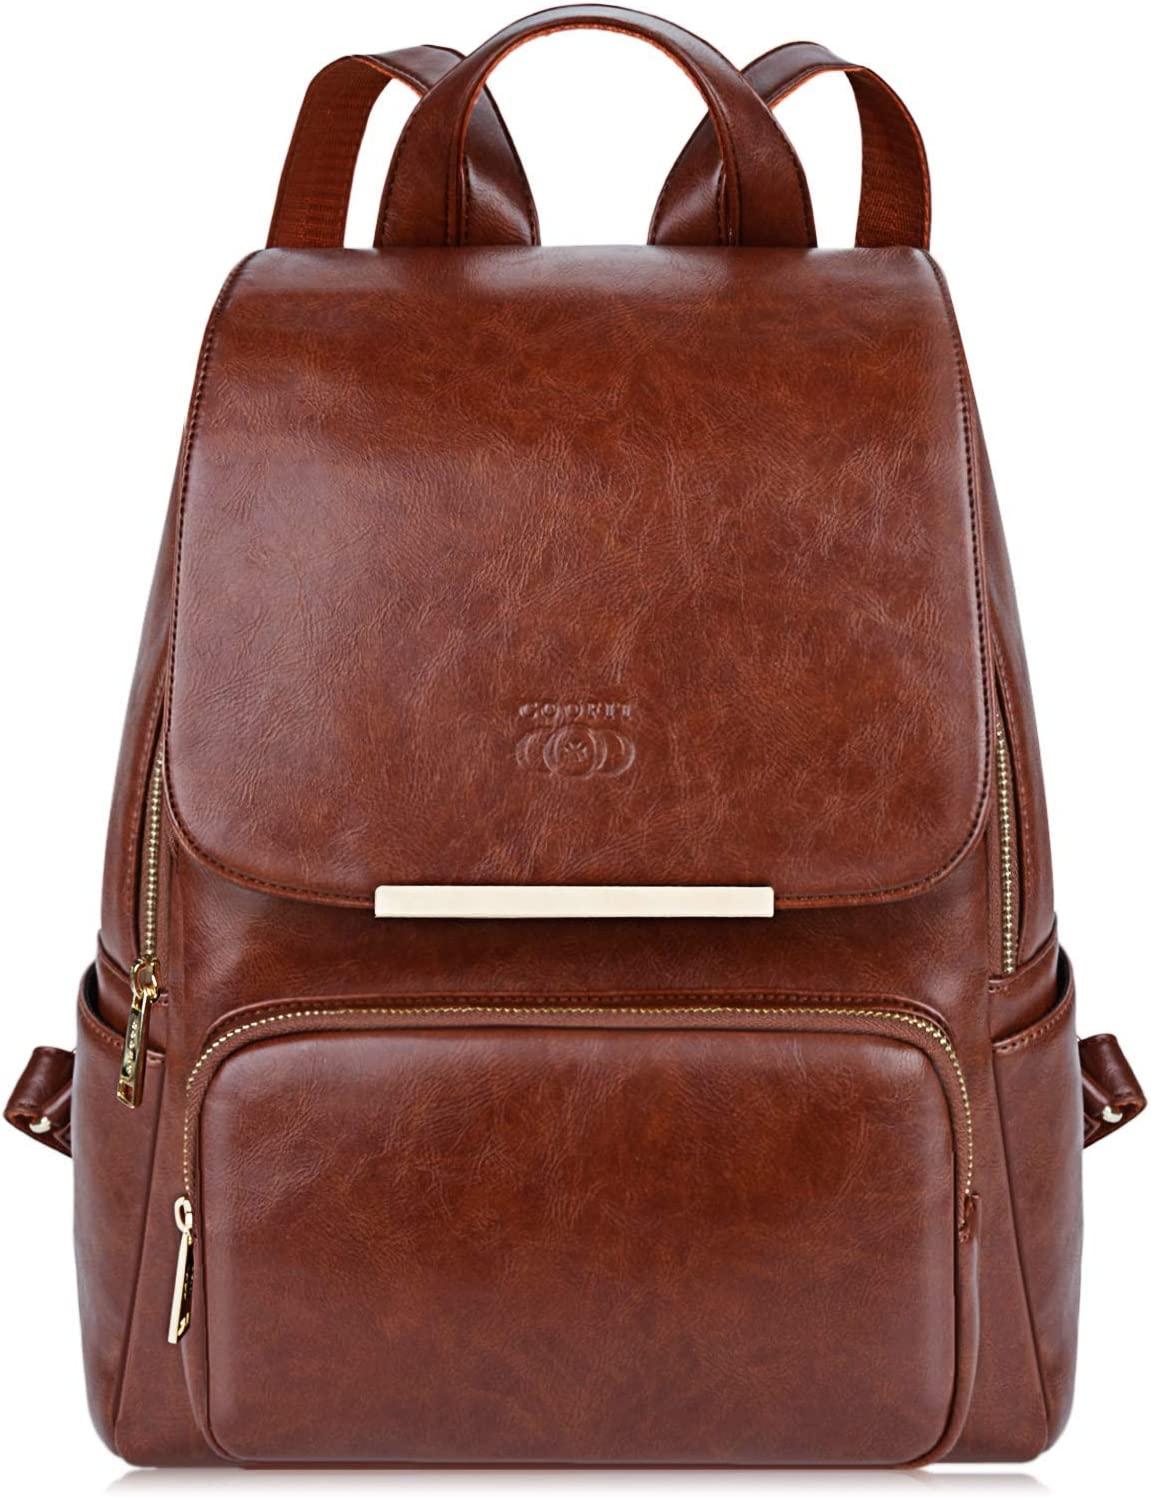 COOFIT PU Leather Backpack School Backpack Casual Daypack with Pouch for Women Brown